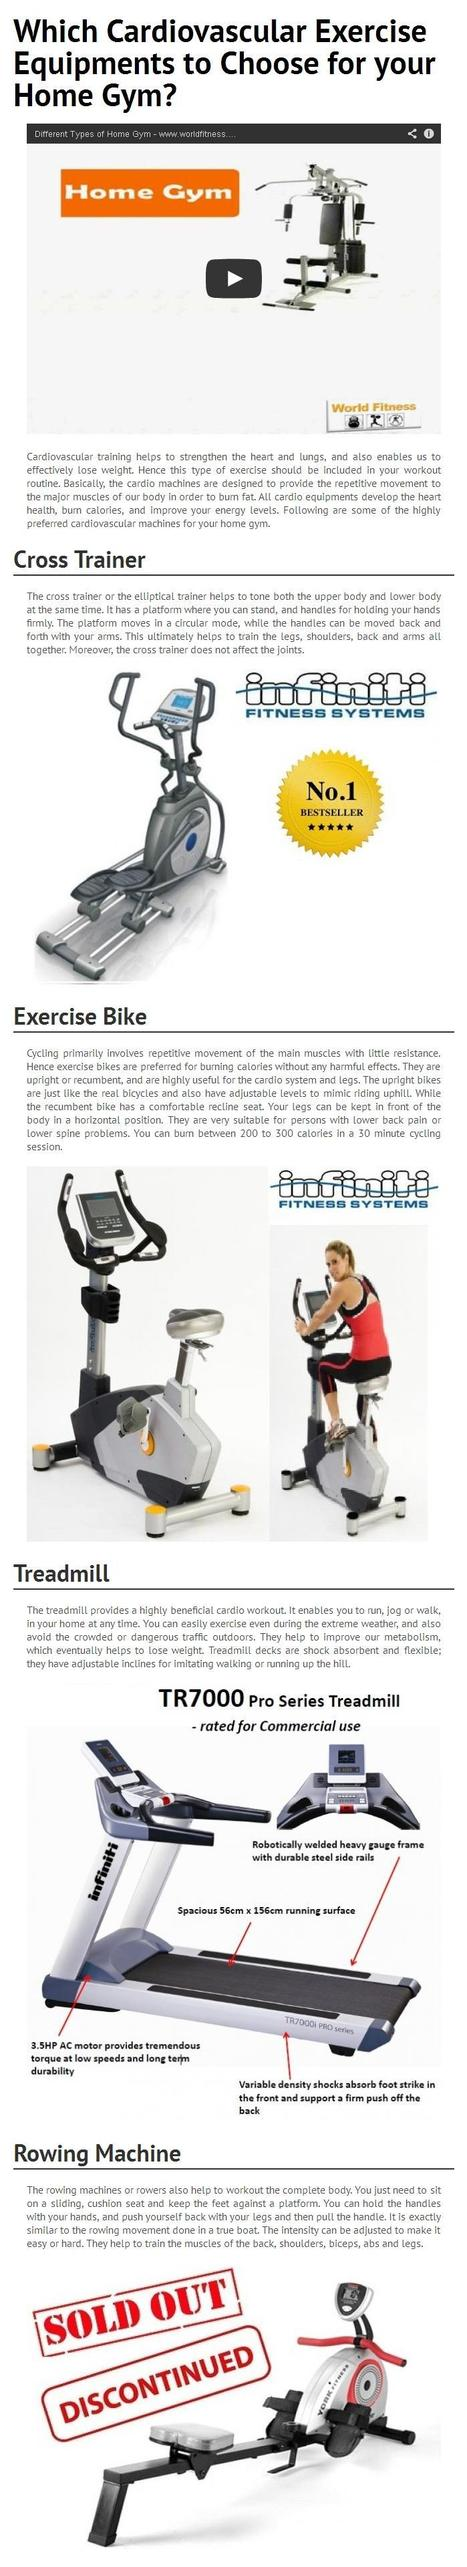 Which Cardiovascular Exercise Equipments to Choose for your Home Gym?   worldfitness   Scoop.it